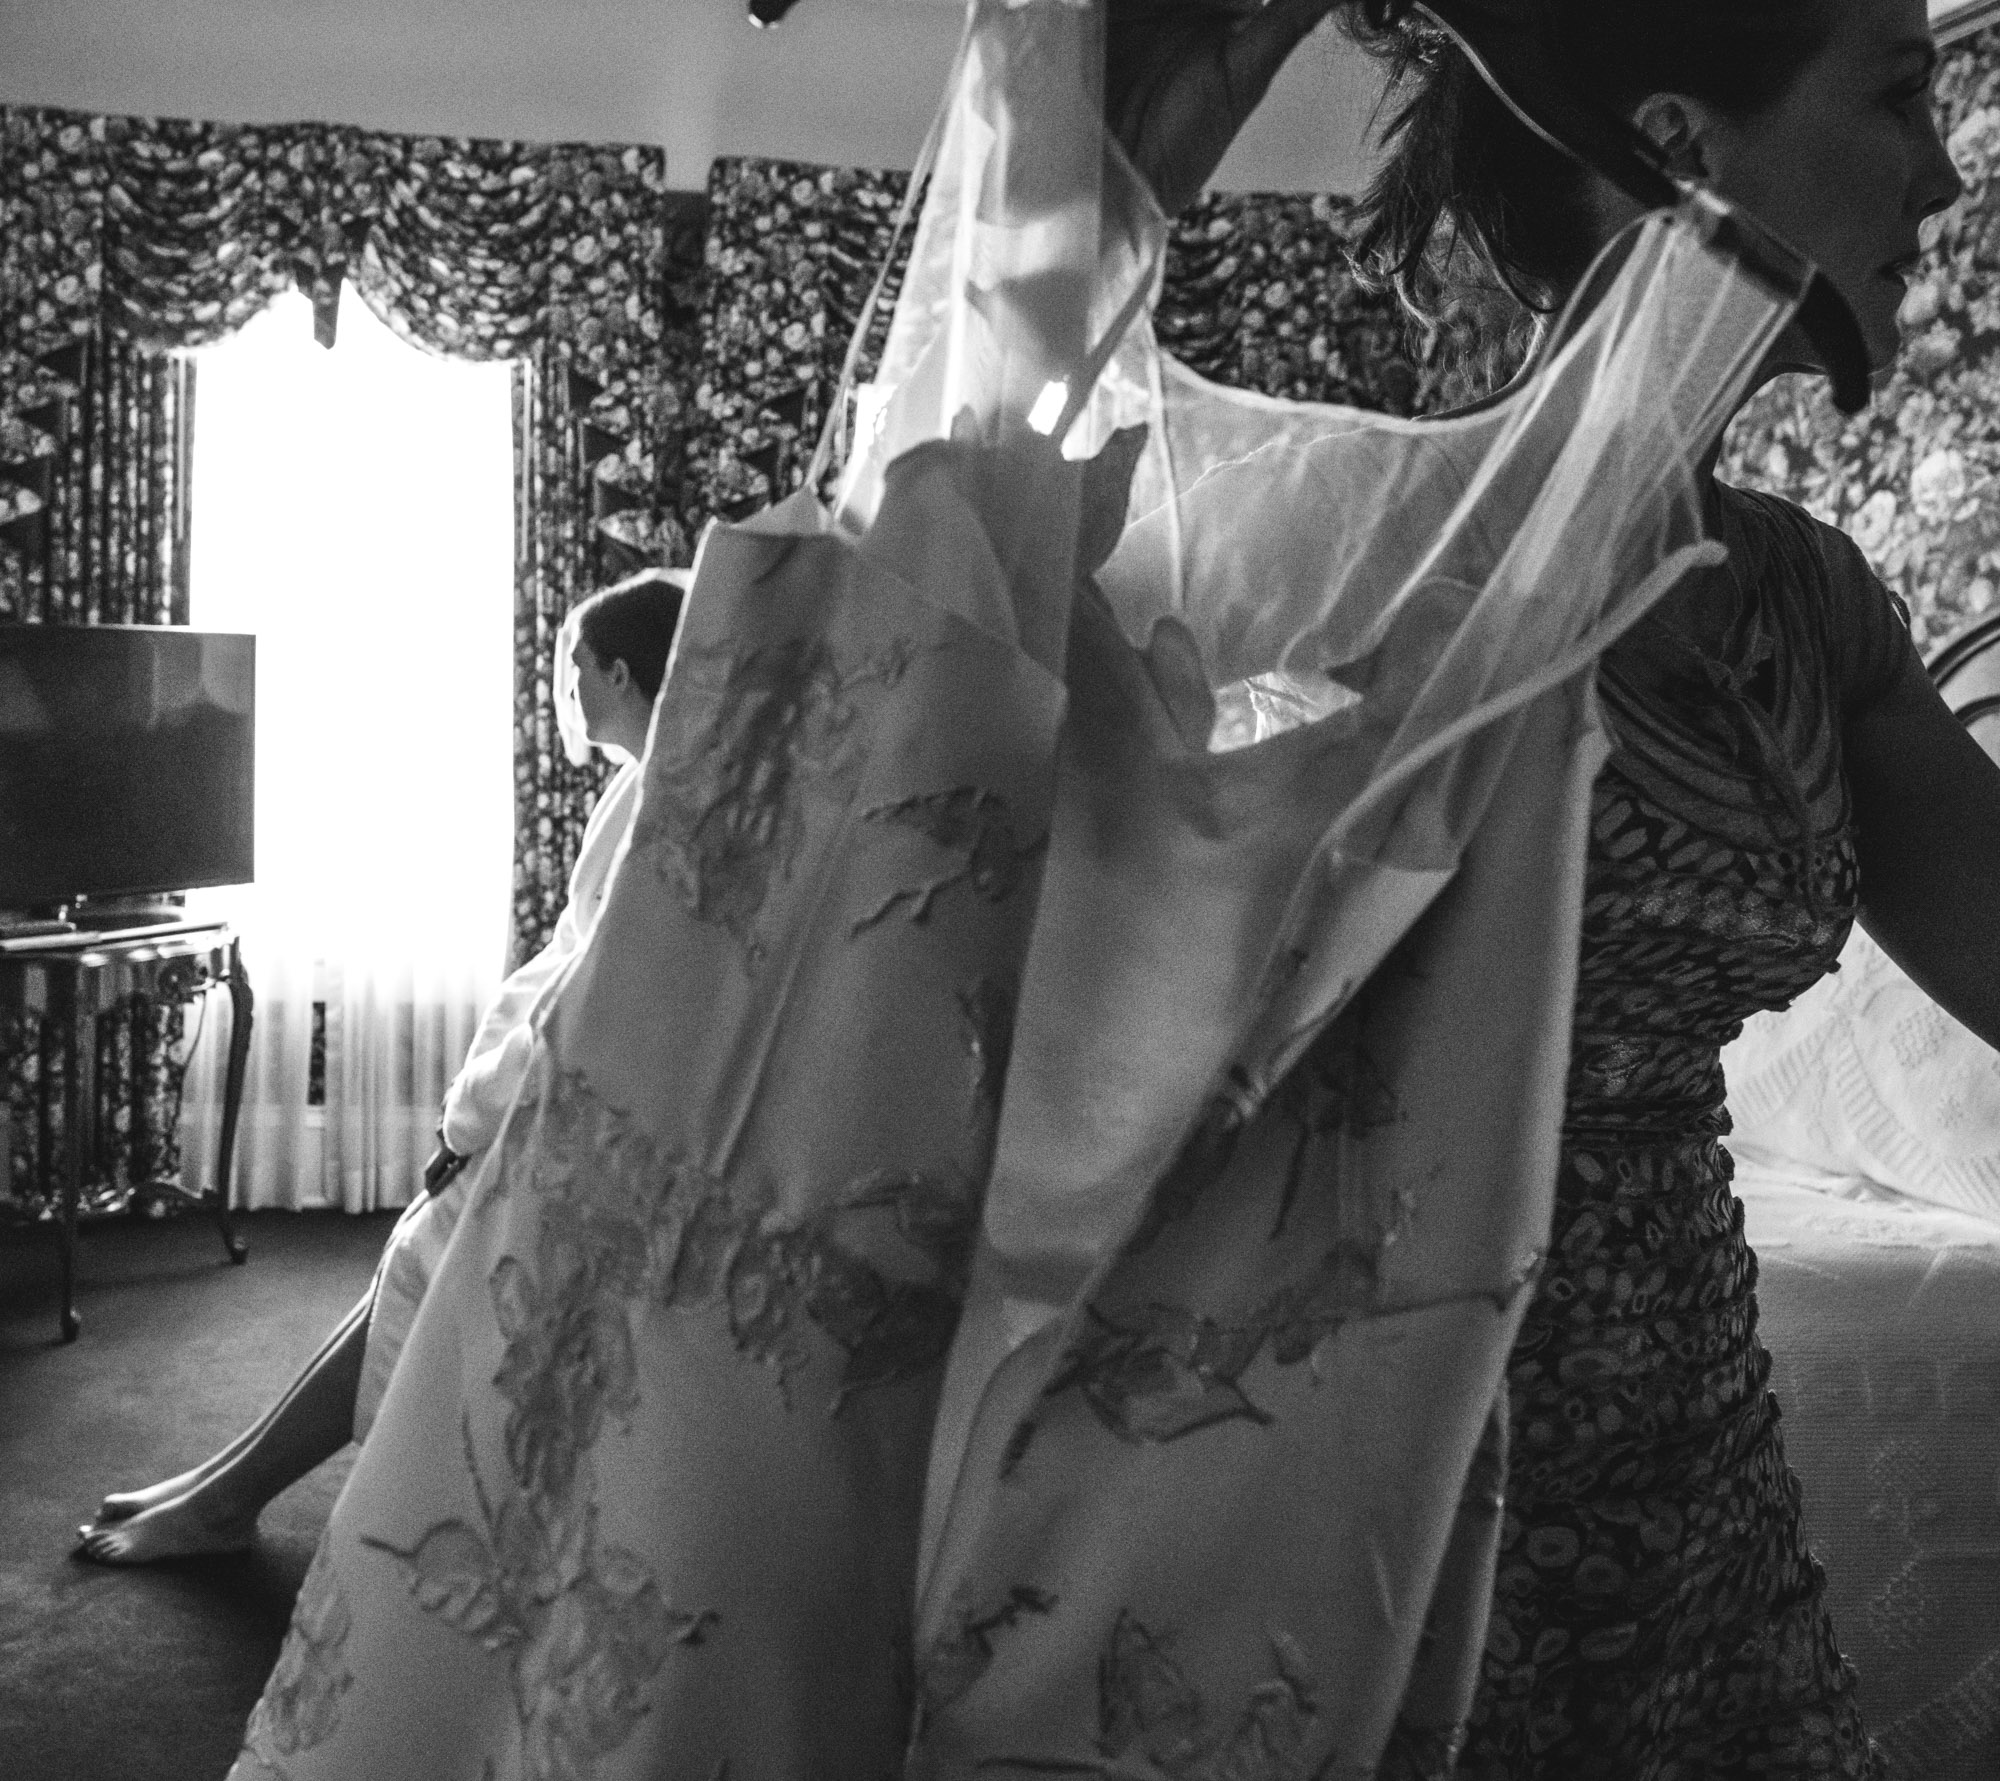 Black and white photograph of a woman holding up a dress in the foreground as a young girl reclines on the bed behind her in an opulent hotel suite in the Hotel Boulderado in Boulder, CO. Taken during wedding preparations.